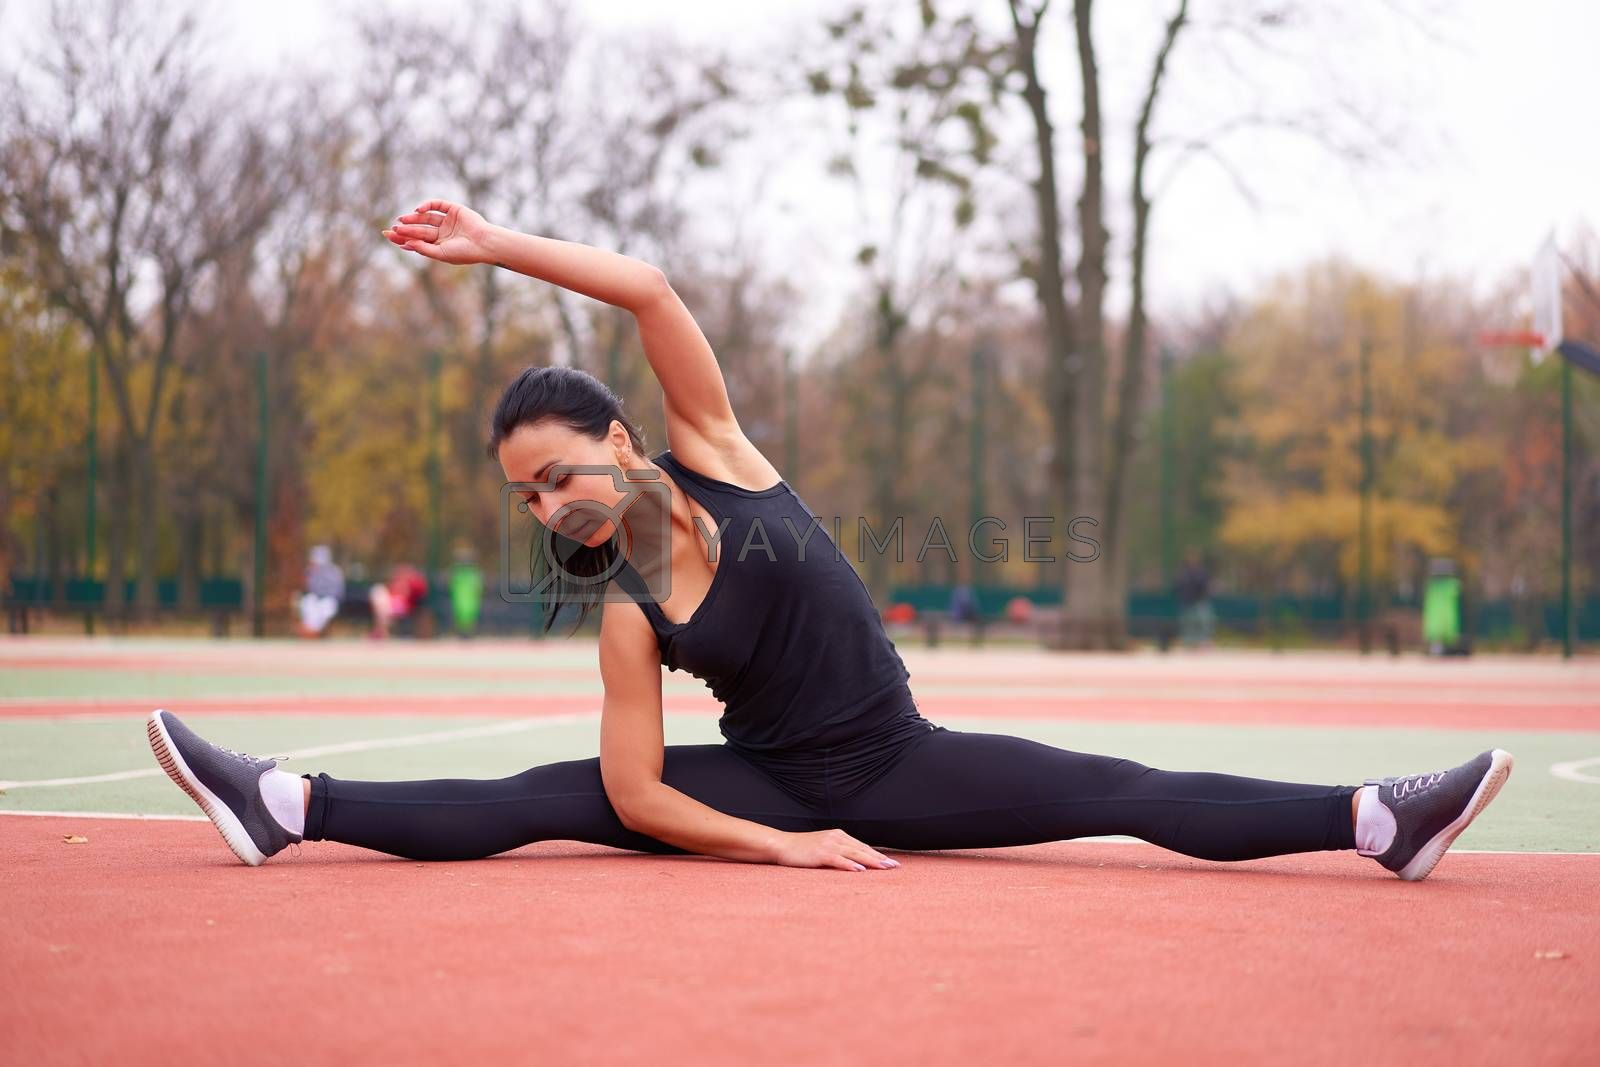 Happy girl doing fitness exercises outdoor on playground. Healthy lifestyle. Morning workout positive emotion smiling sportive people. one female training stretching